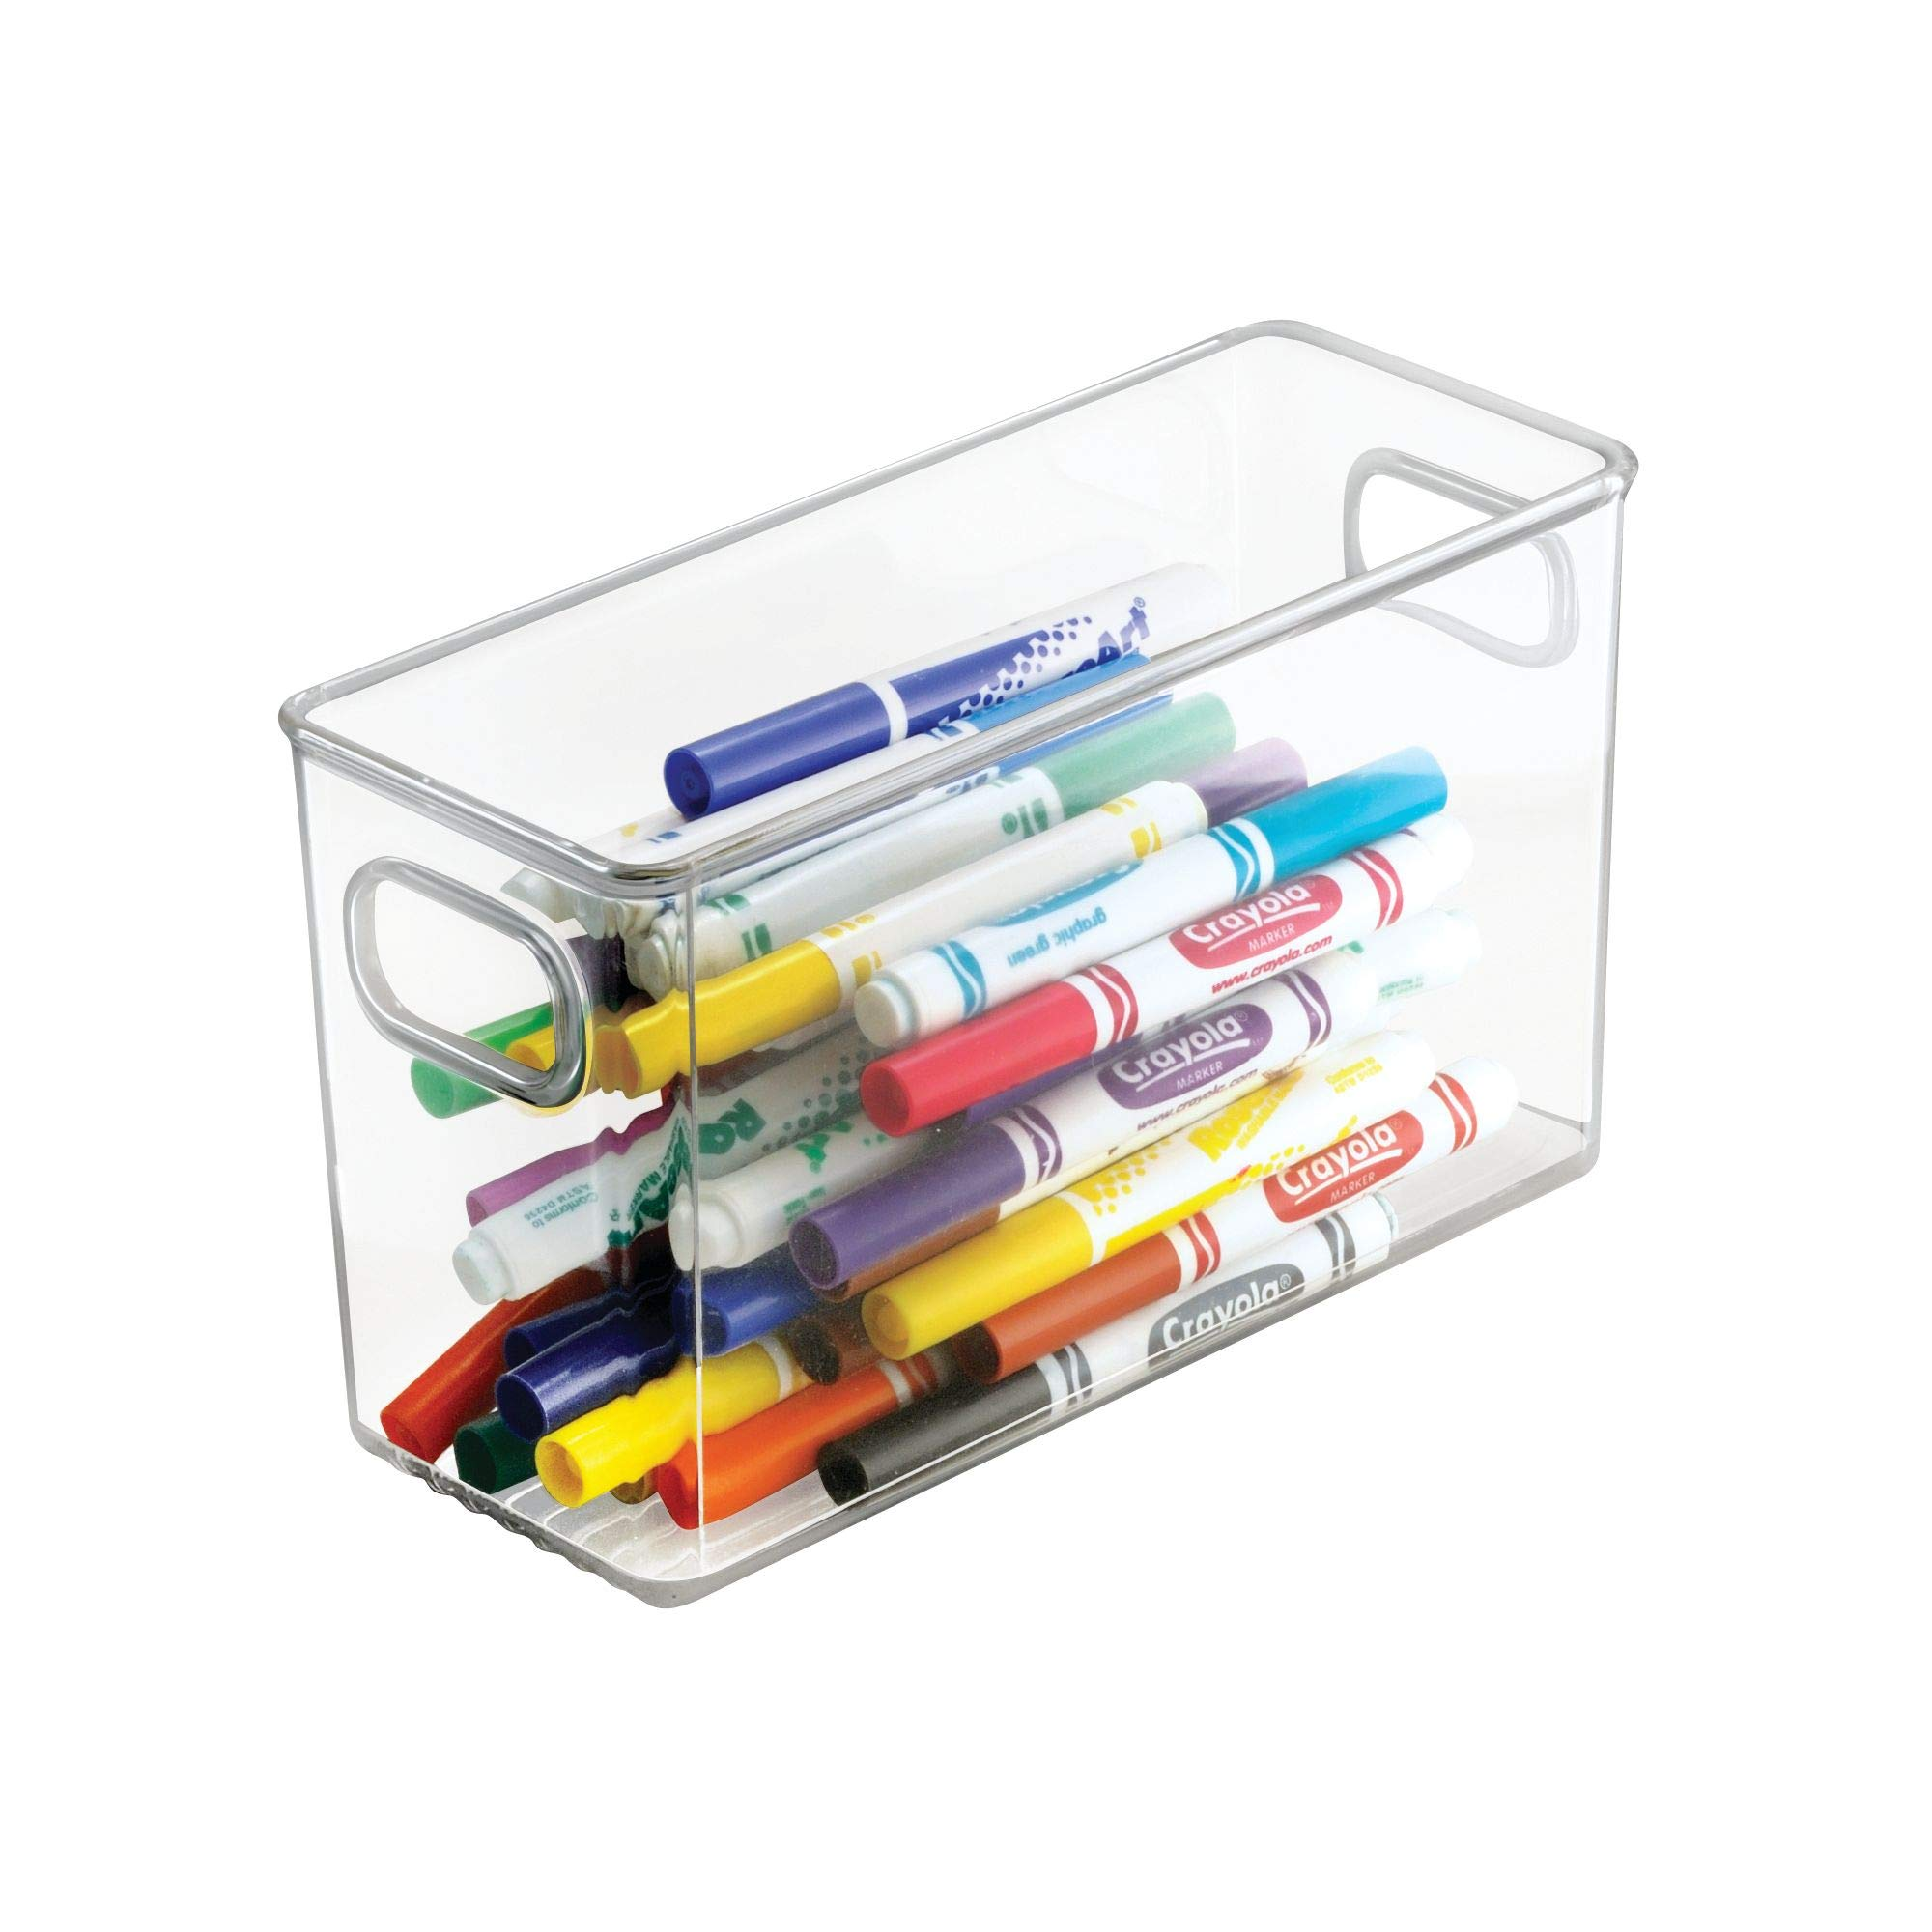 mDesign Office Supplies Desk Organizer Bin for Pens, Pencils, Markers, Highlighters, Tape - Pack of 4, 10'' x 4'' x 6'', Clear by mDesign (Image #5)